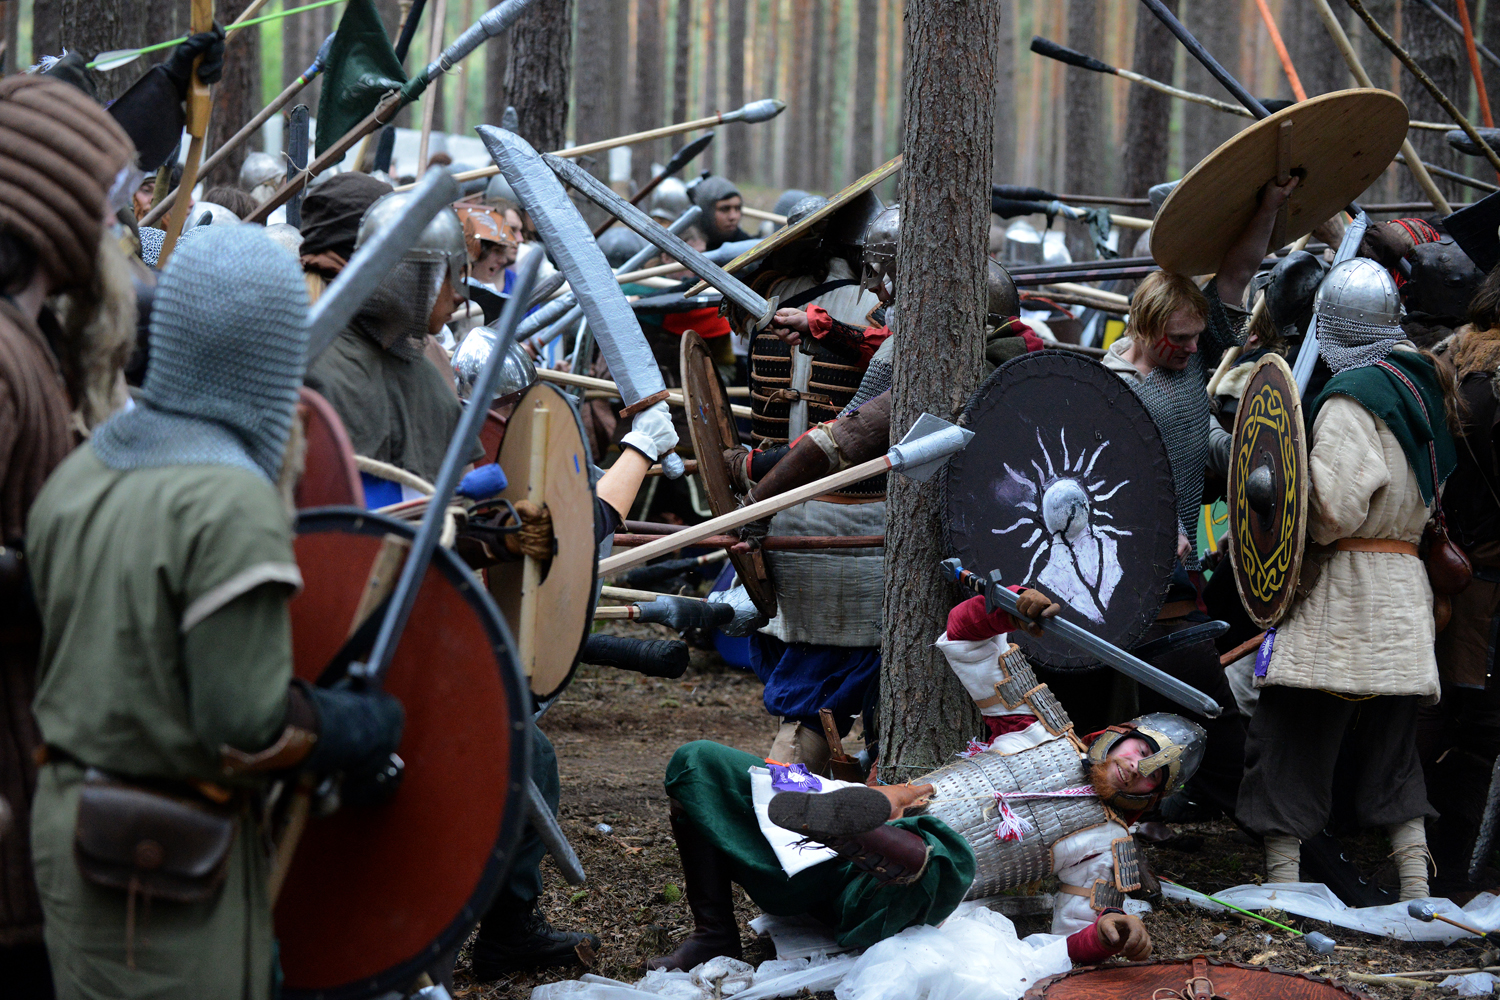 May 25, 2013. Fans dressed as characters of the Tolkien classic The Hobbit take part in the reenactment of a battle in a forest near the village of Doksy, northern Czech Republic.